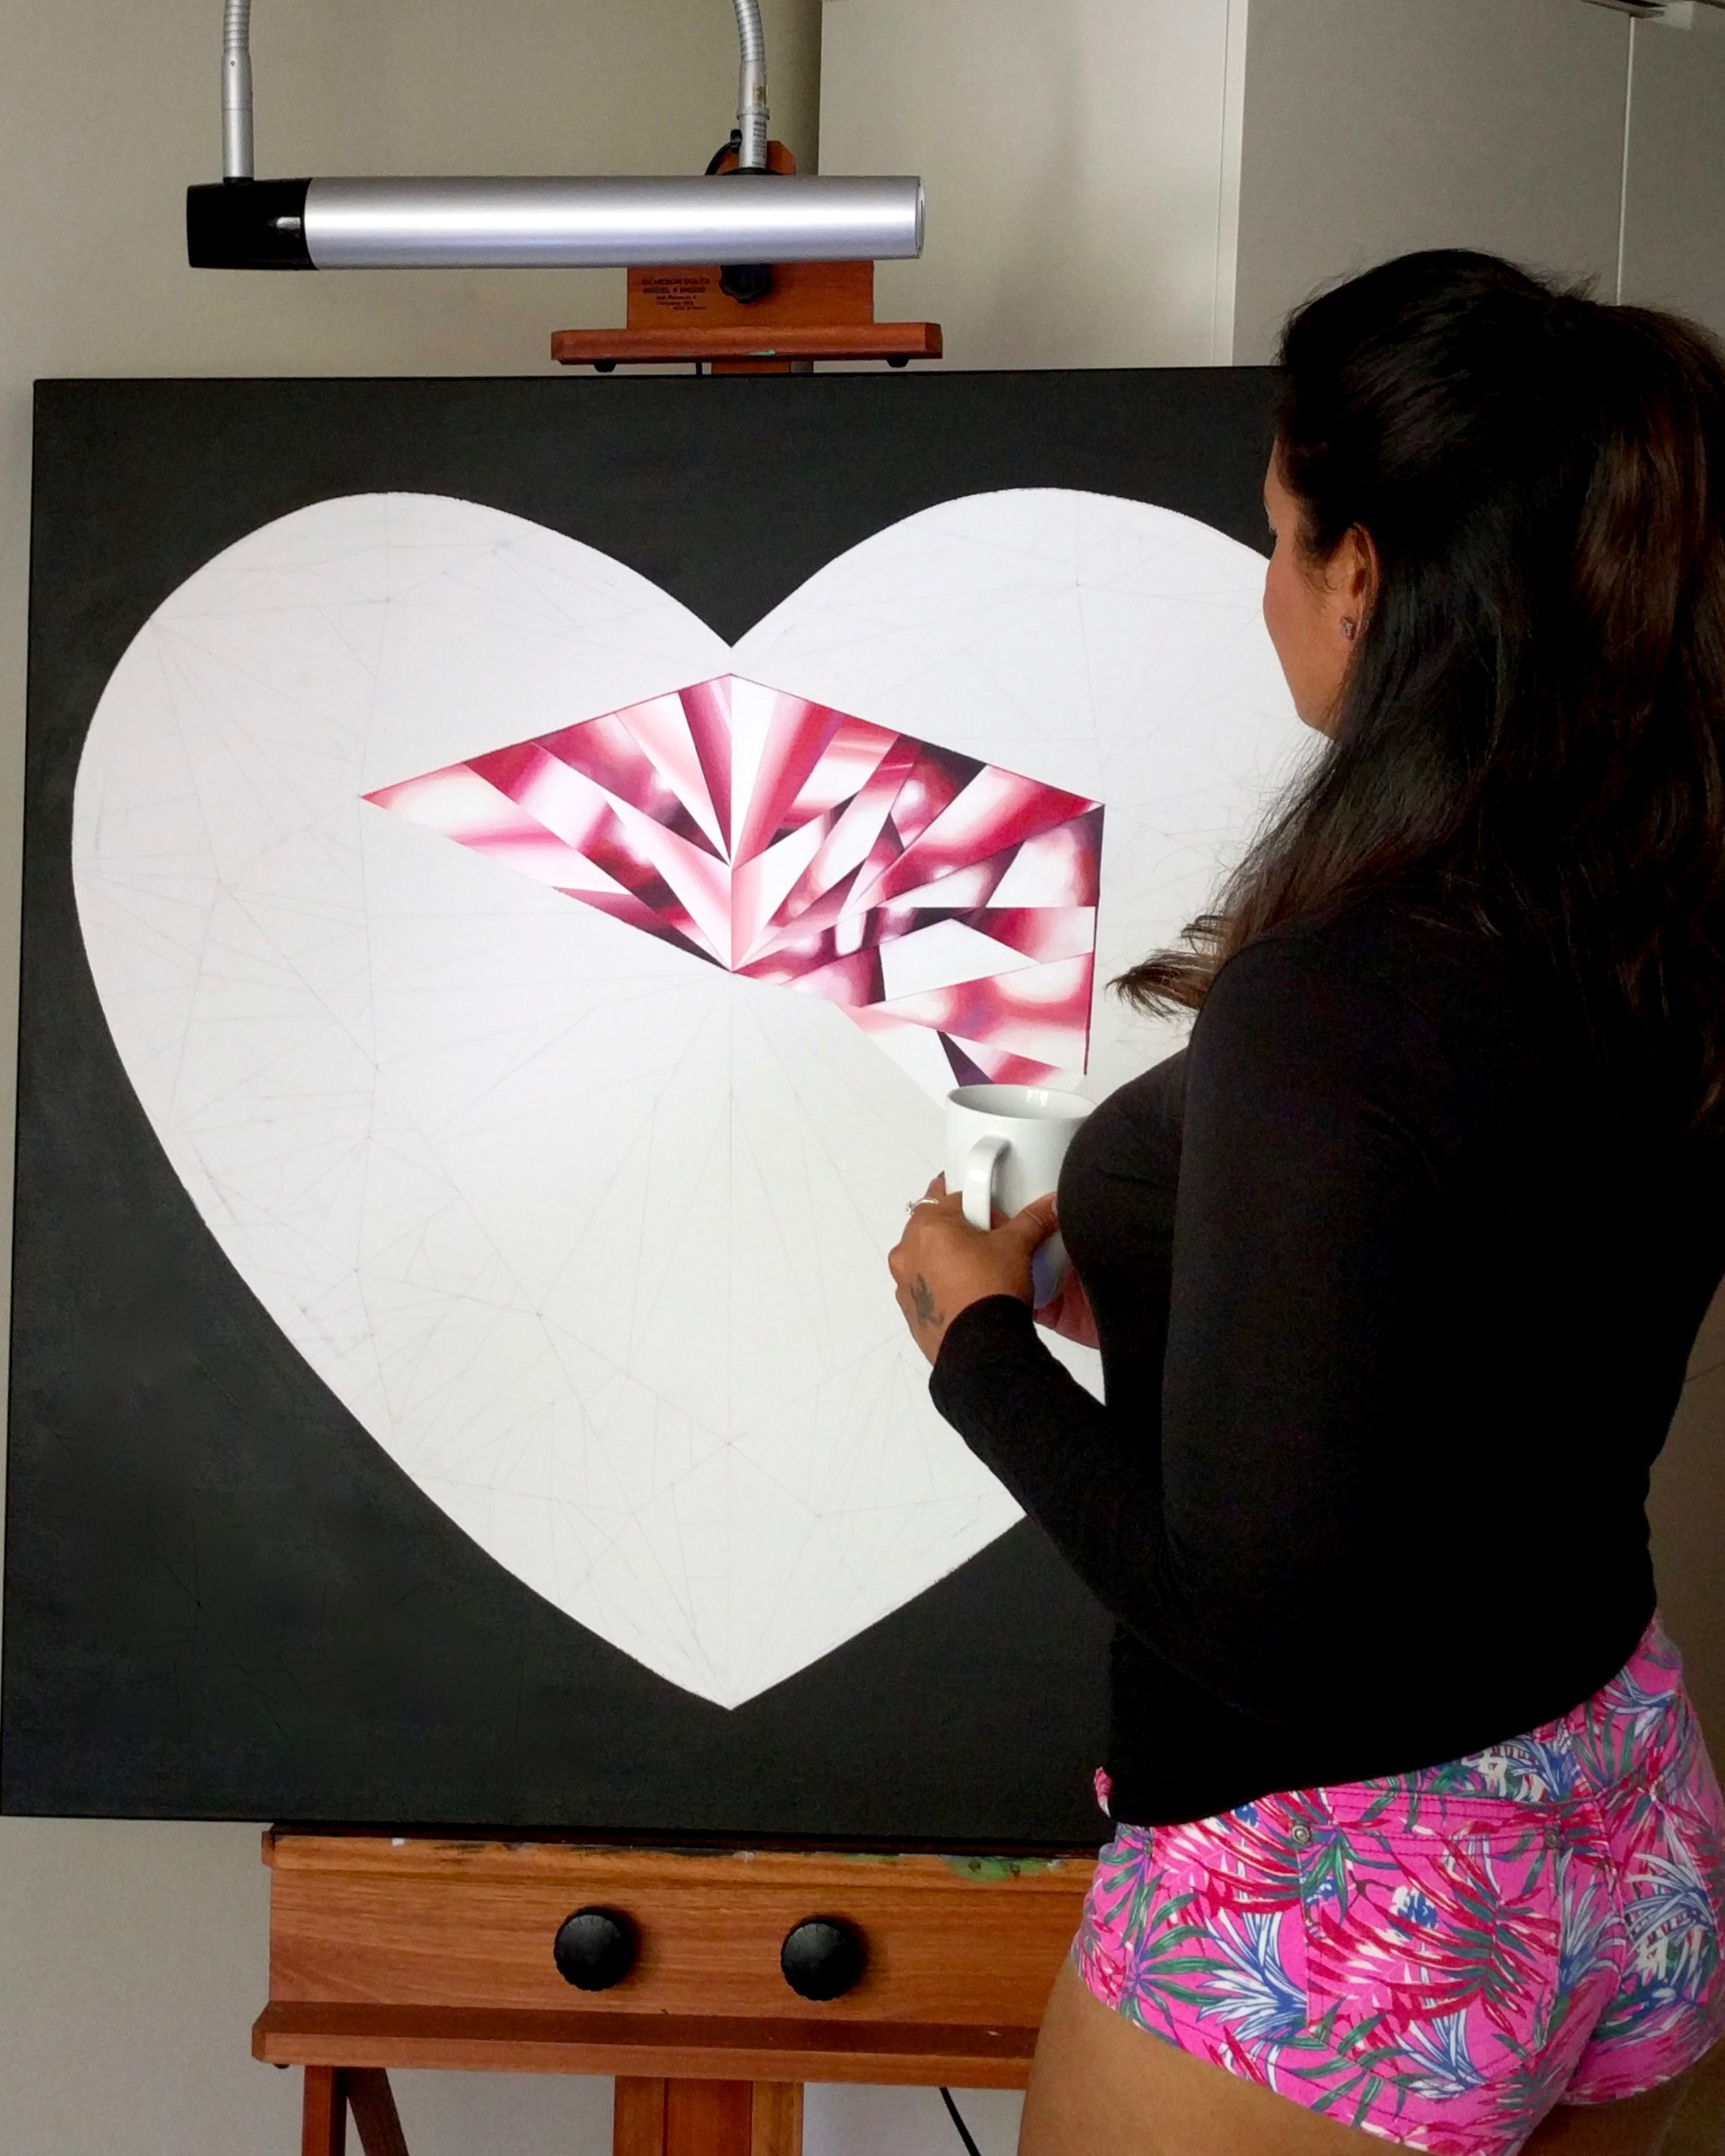 Do it with passion or not at all! In progress, 'Passionate Heart' - Portrait of a Pink Heart-Shaped Diamond. 36 x 36 inches. Acrylic on Canvas. ©Reena Ahluwalia